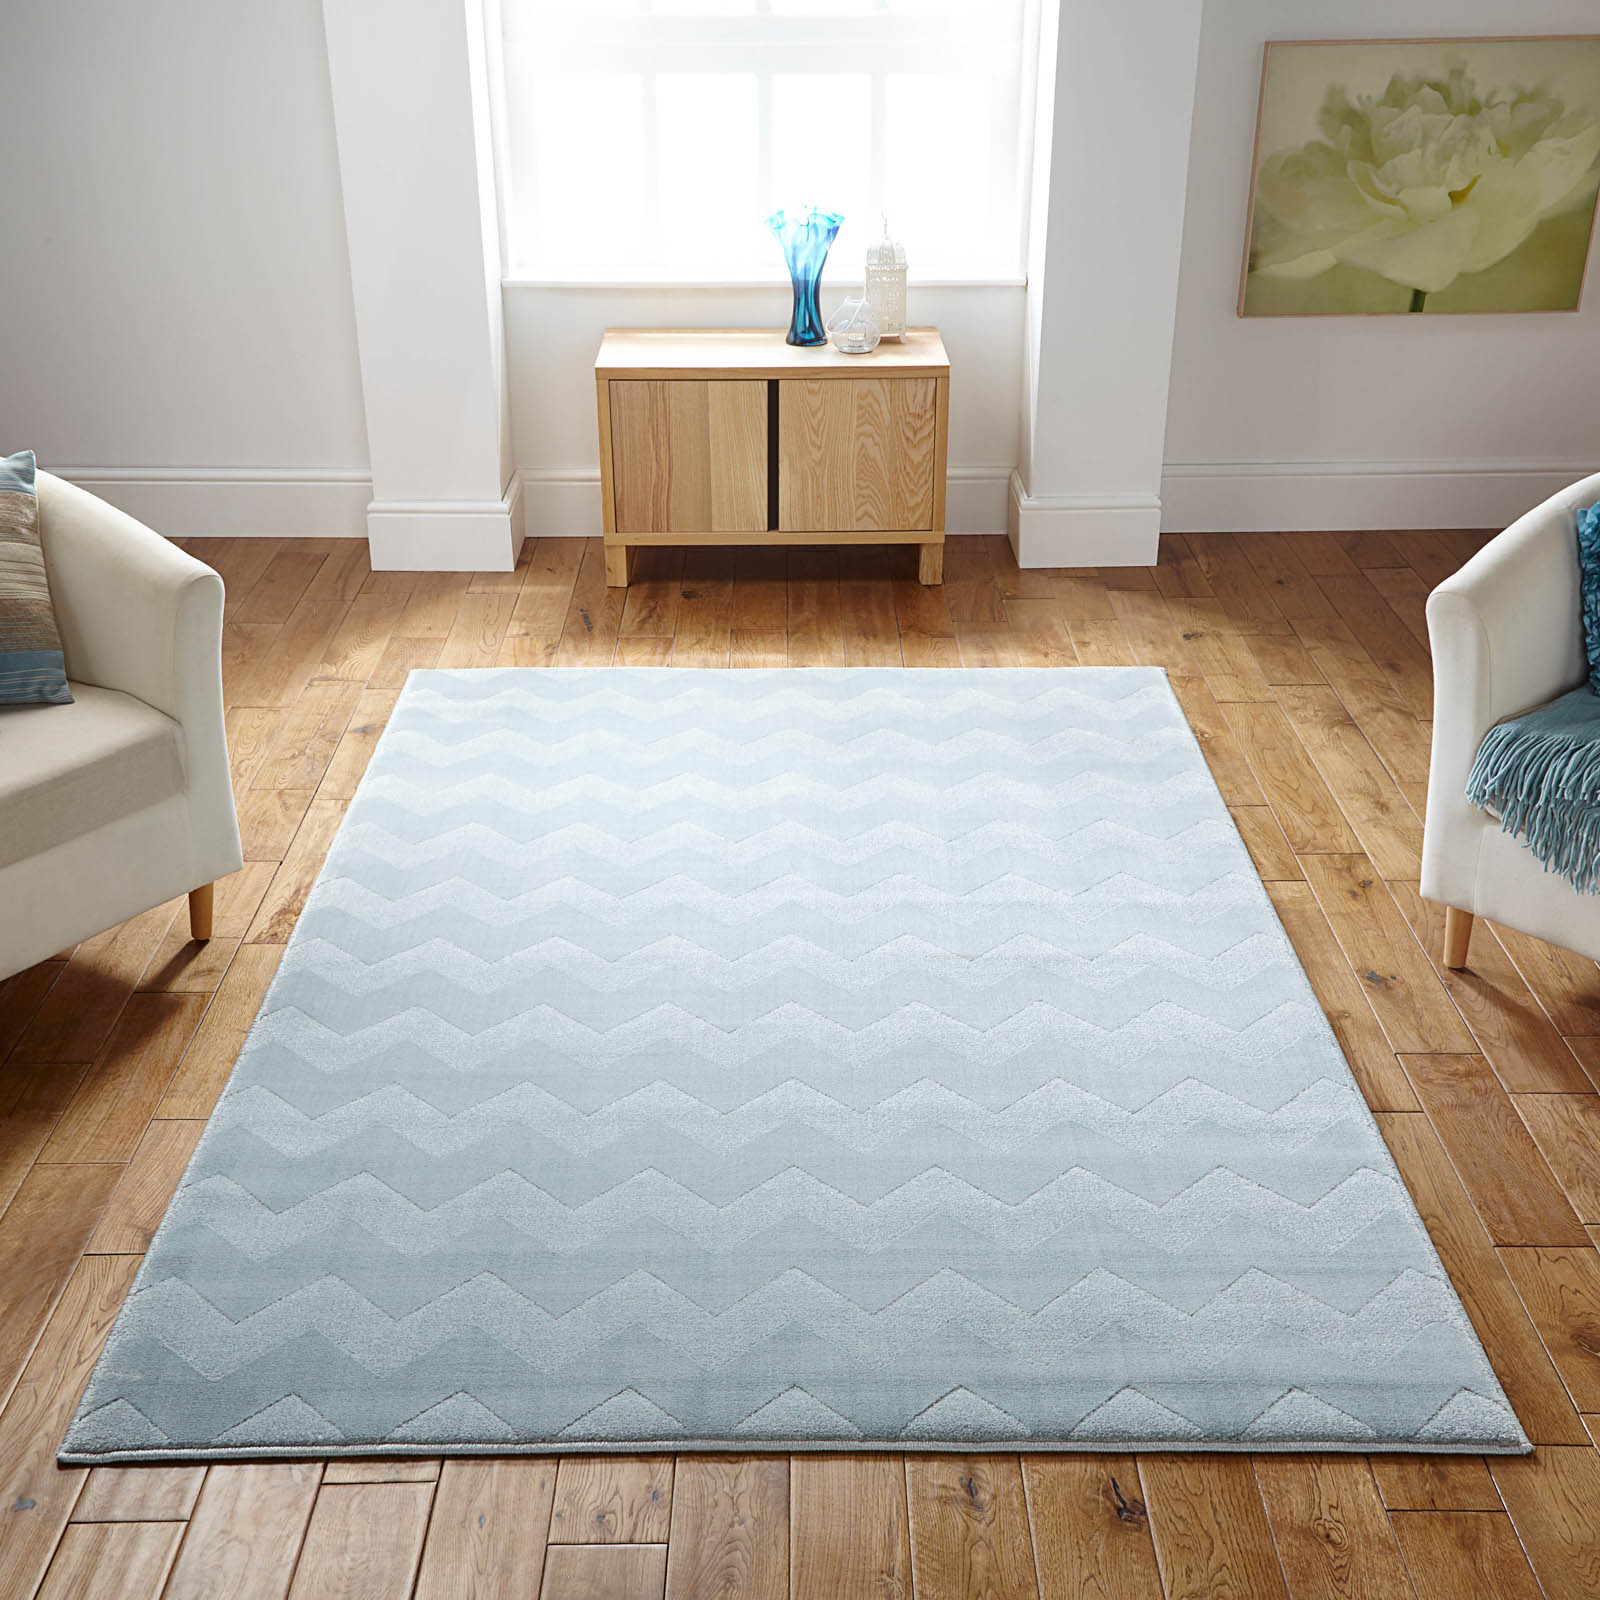 Louvre Rugs 1030H in Light Blue